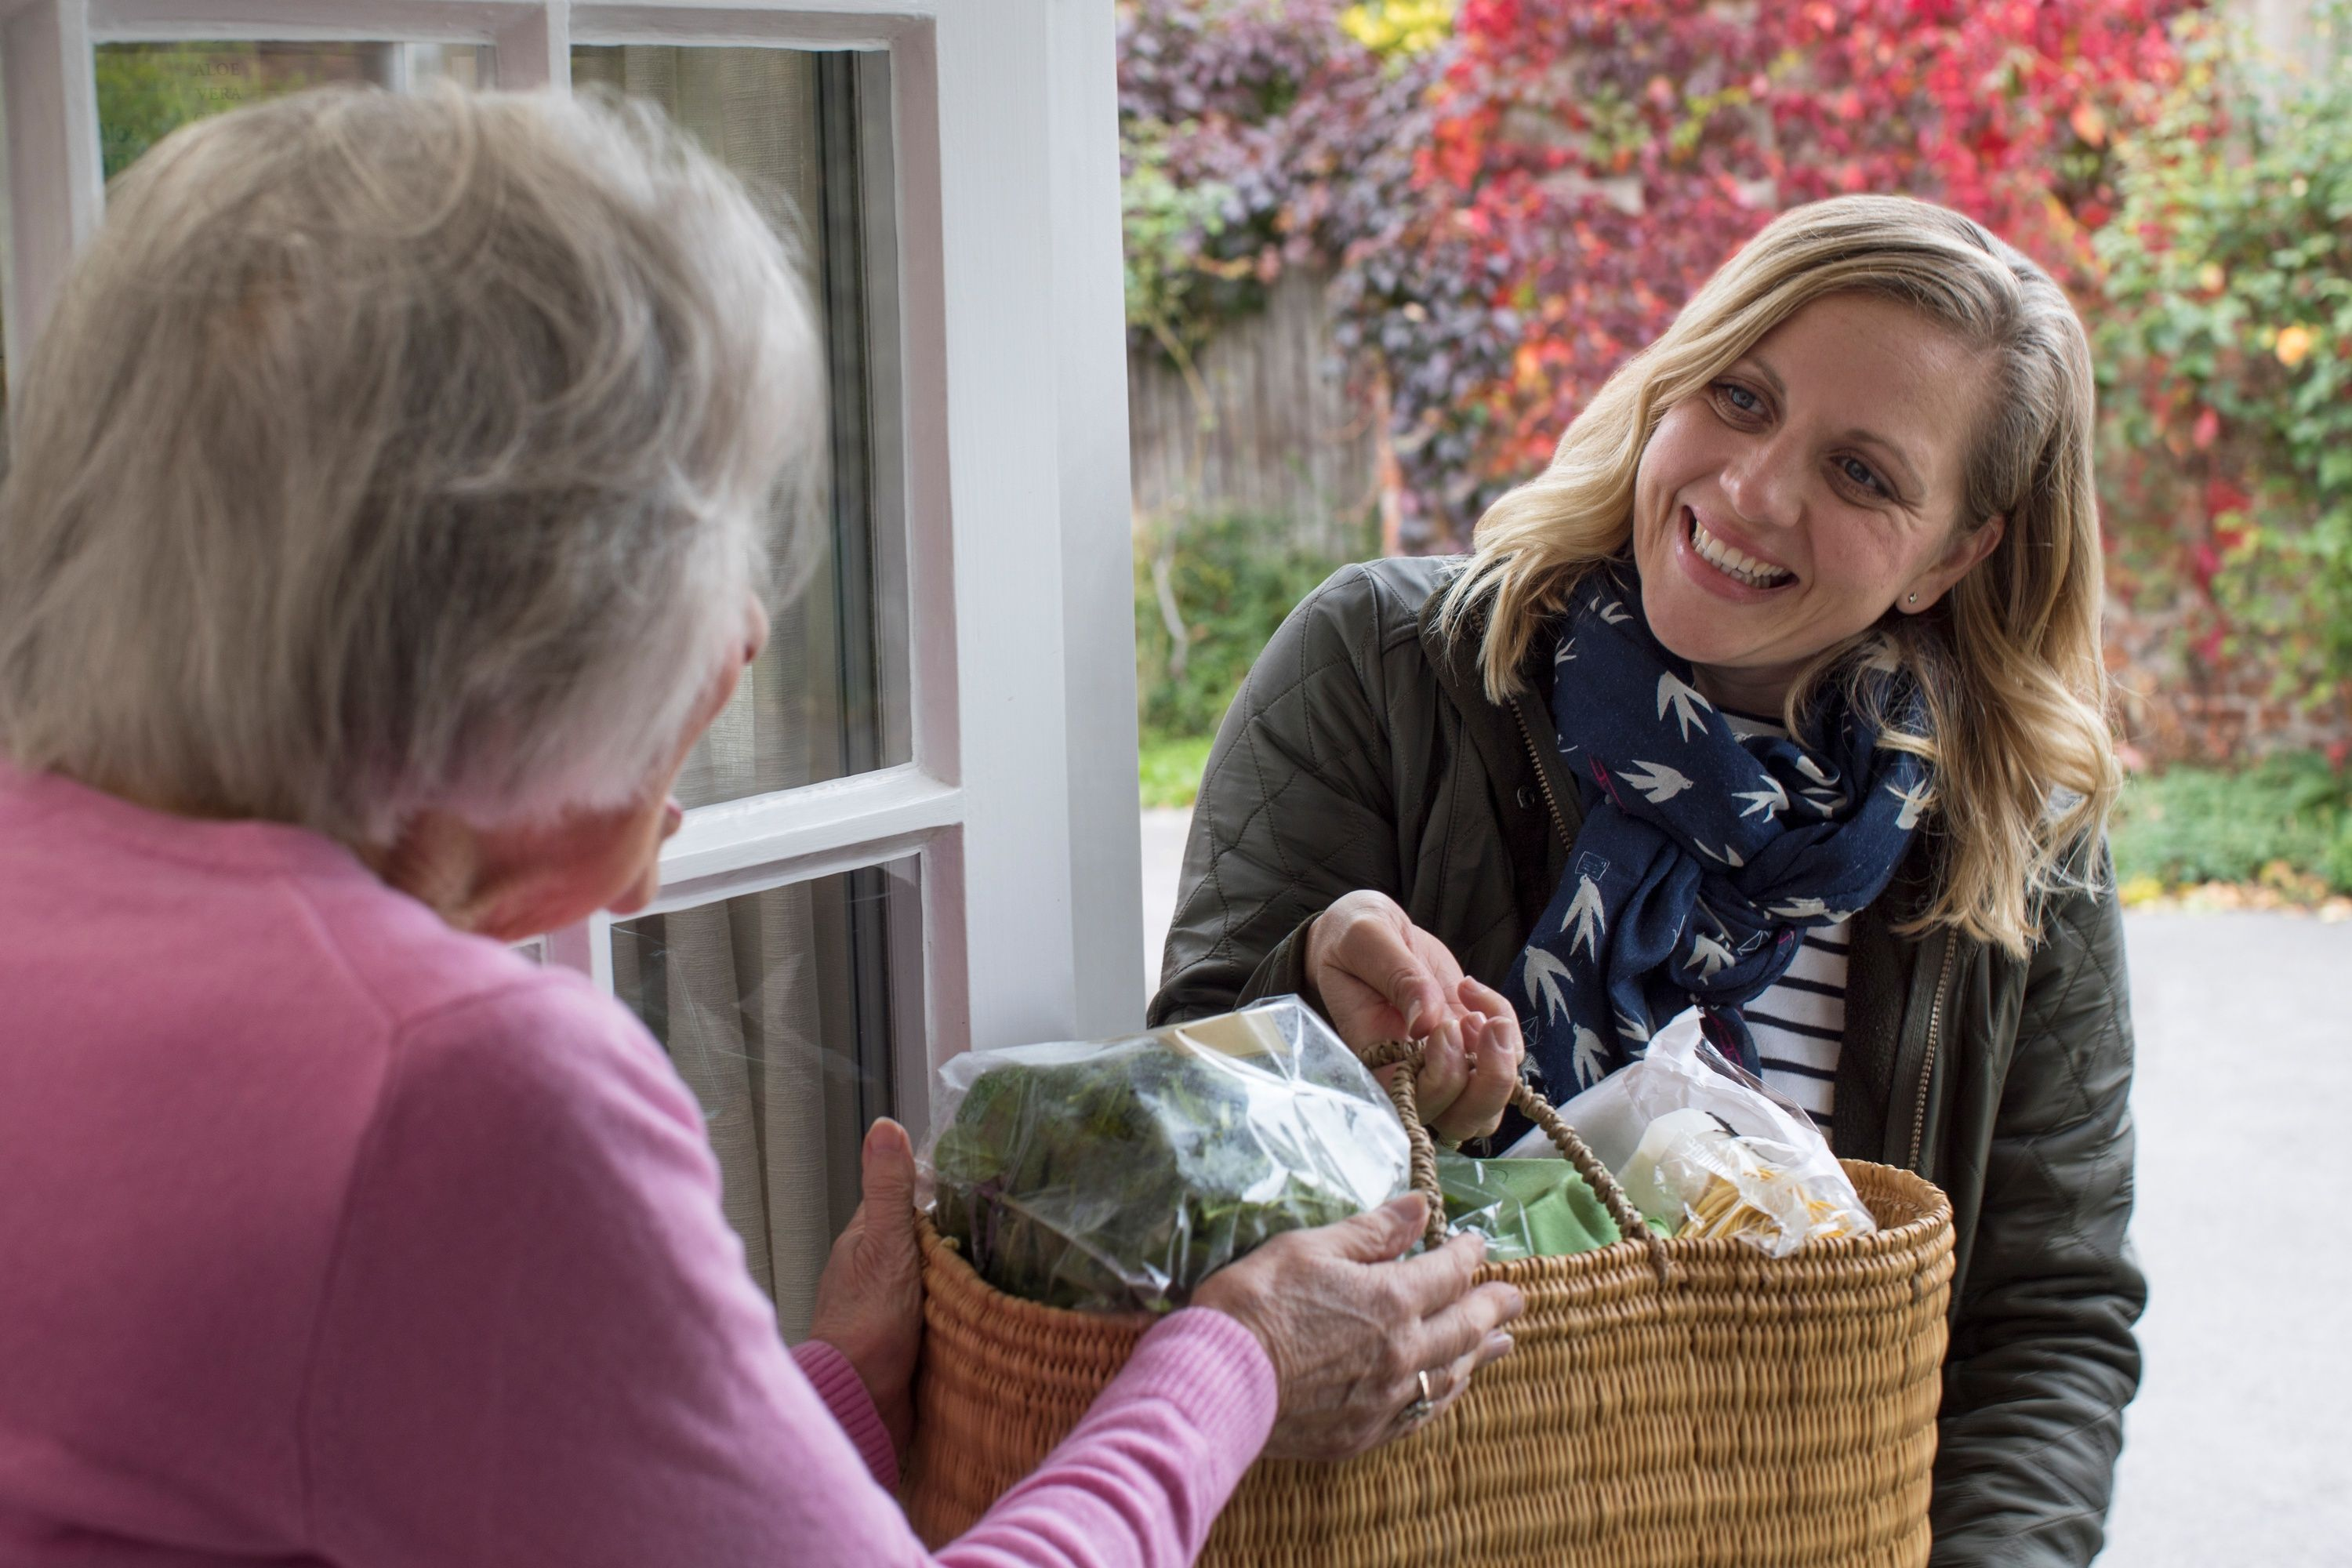 Middle aged woman bringing groceries to older female neighbor, smiling and standing at the front door